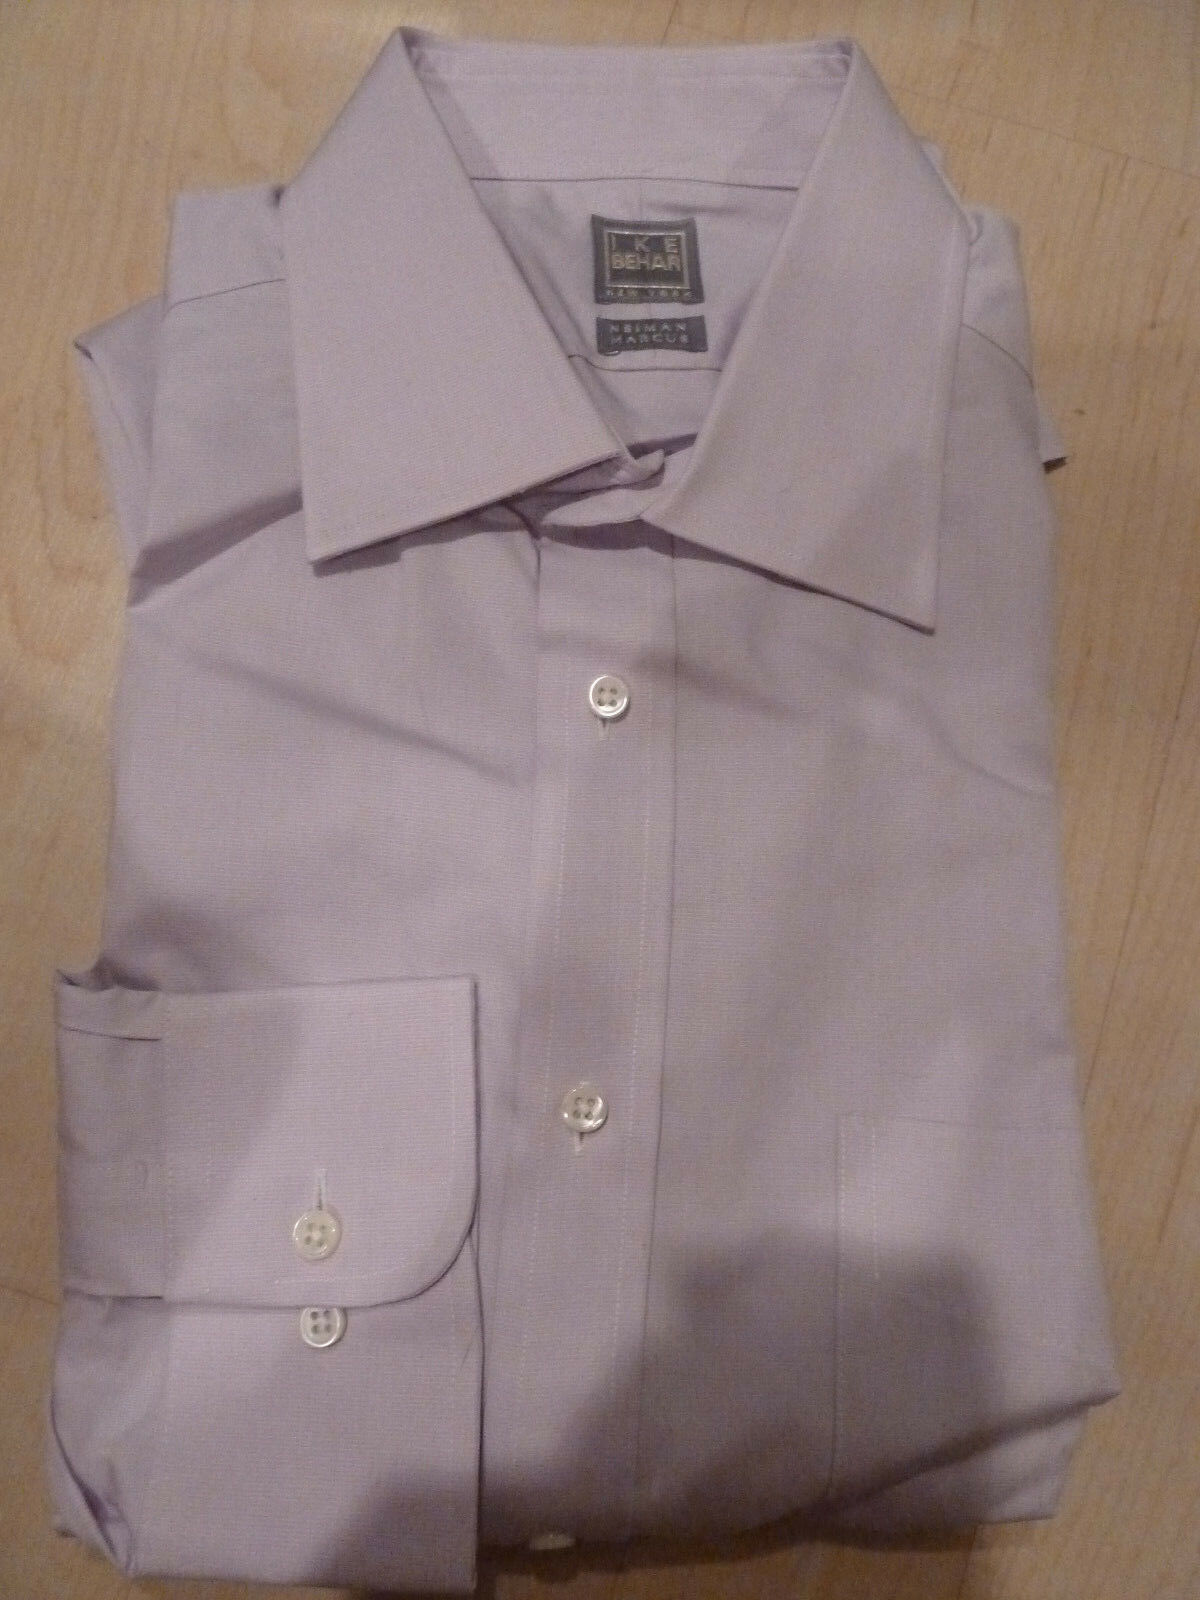 NEW  IKE BEHAR Mens Dress SHIRT 16 34 35 purplec Made in USA BC gold